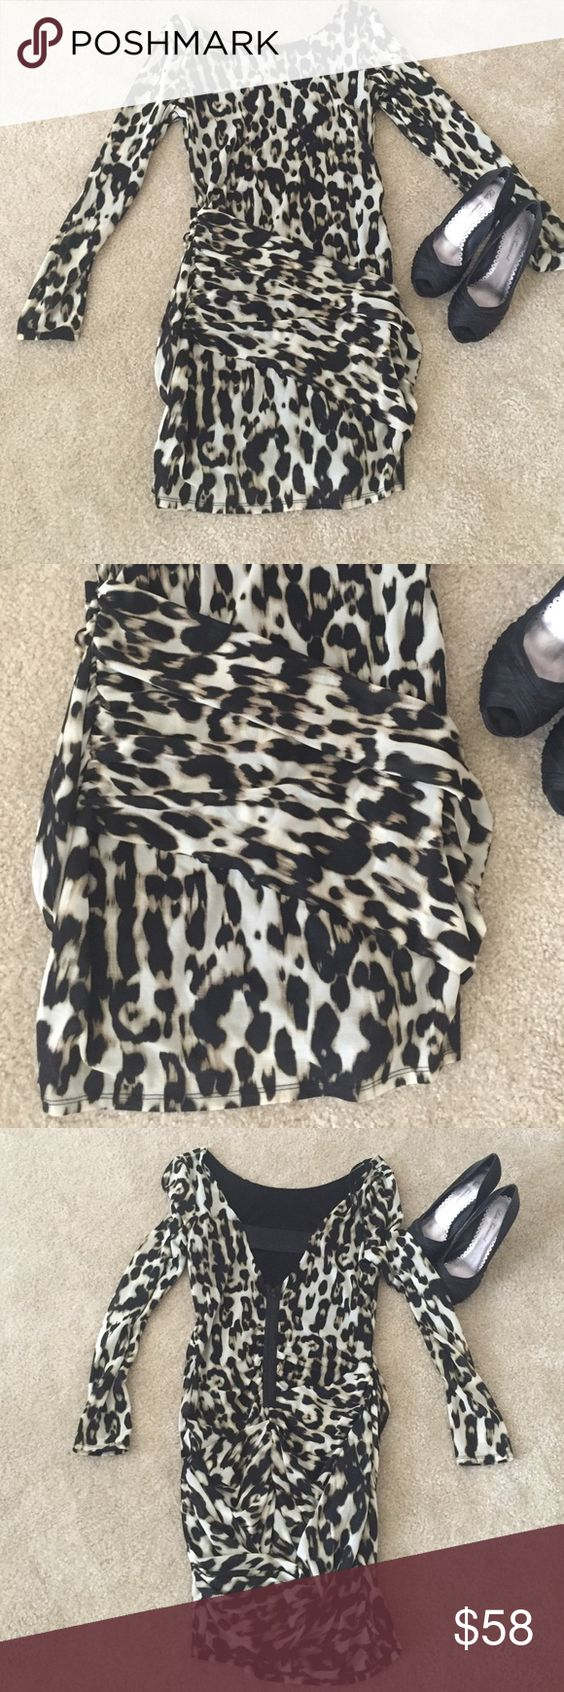 Guess Animal Print Low back Mini Dress! Guess Low Back Animal Print Mini Dress! Super sexy and cute! Low V back with zipper. Bottom of the dress has rouchin. Brand new never worn with tags. Guess Dresses Mini